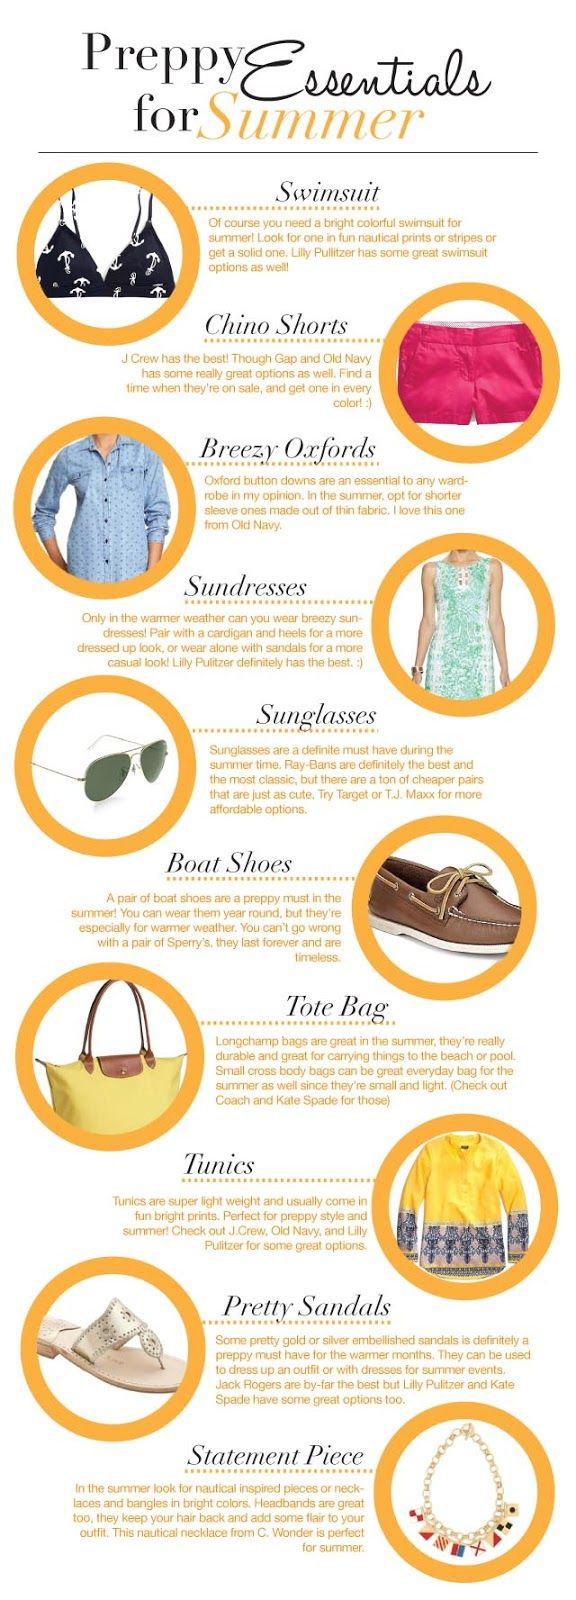 Summer essentials for the preppy girl